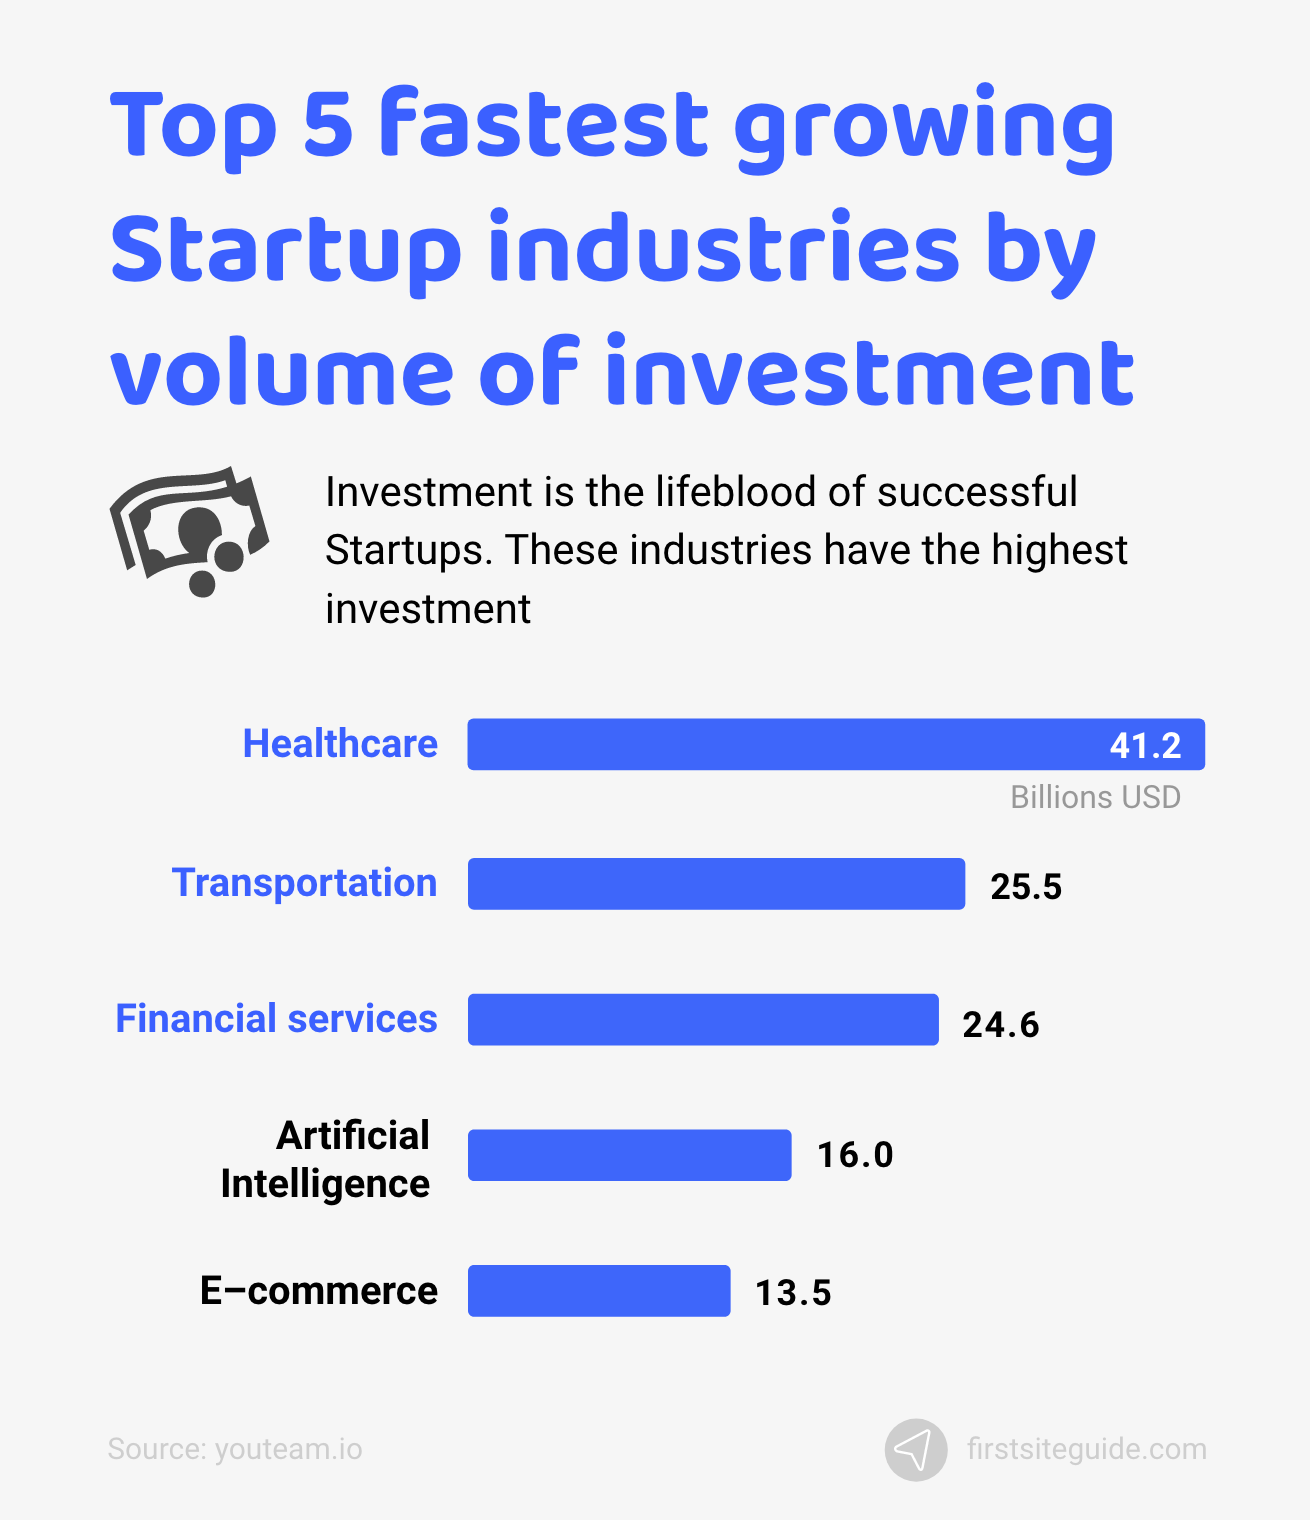 Top 5 fastest growing Startup industries by volume of investment